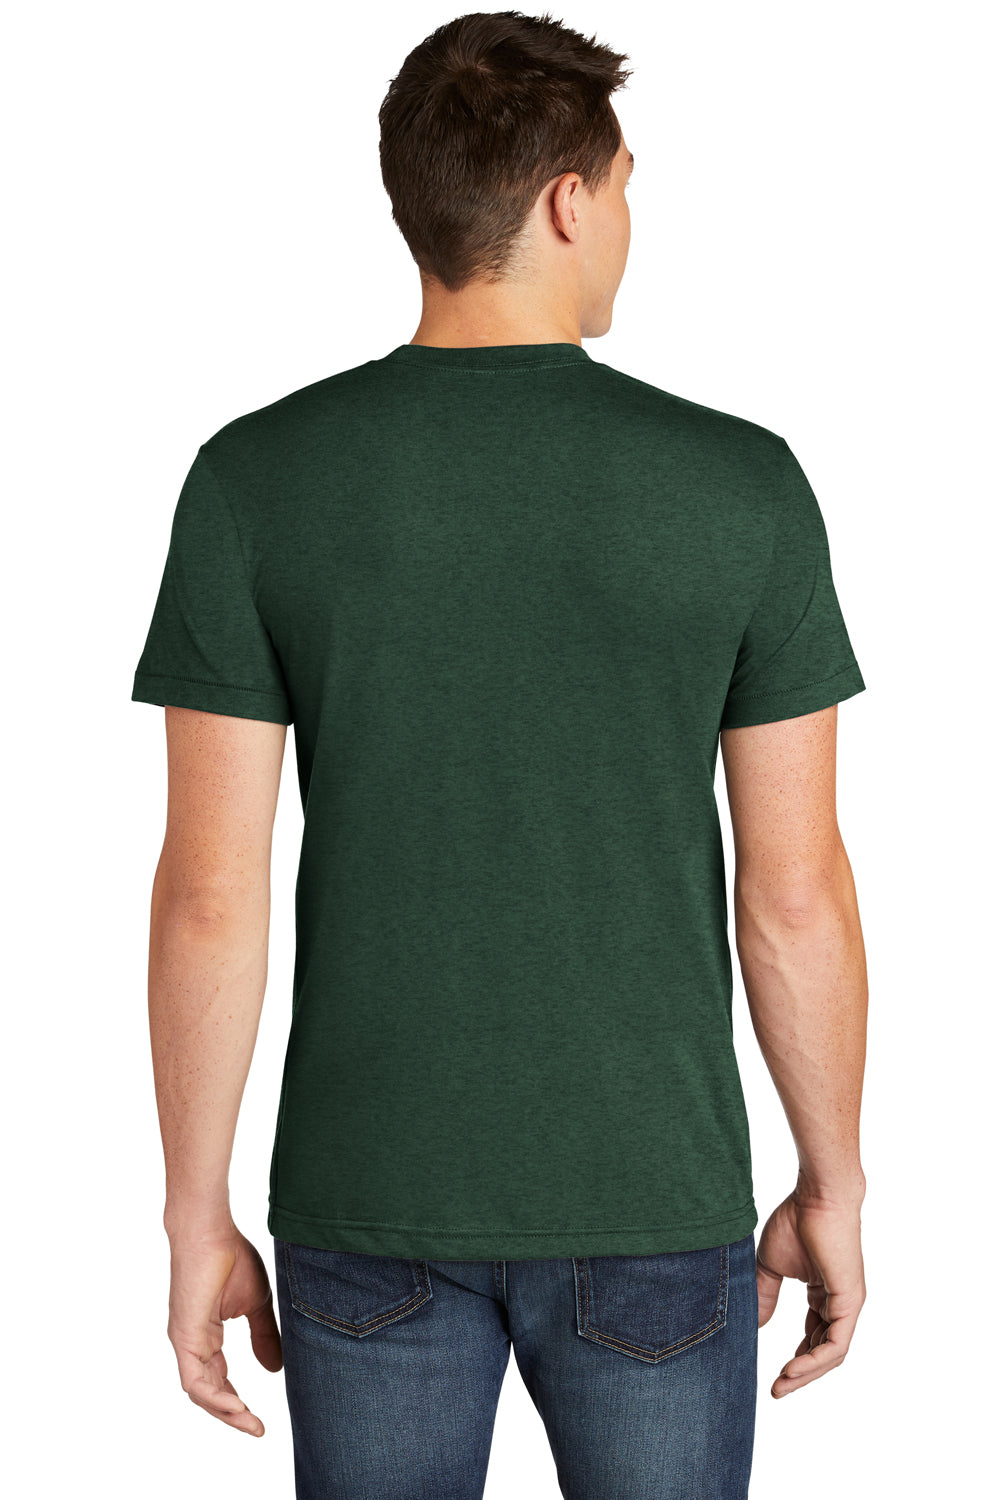 American Apparel BB401W Mens Short Sleeve Crewneck T-Shirt Heather Forest Green Back